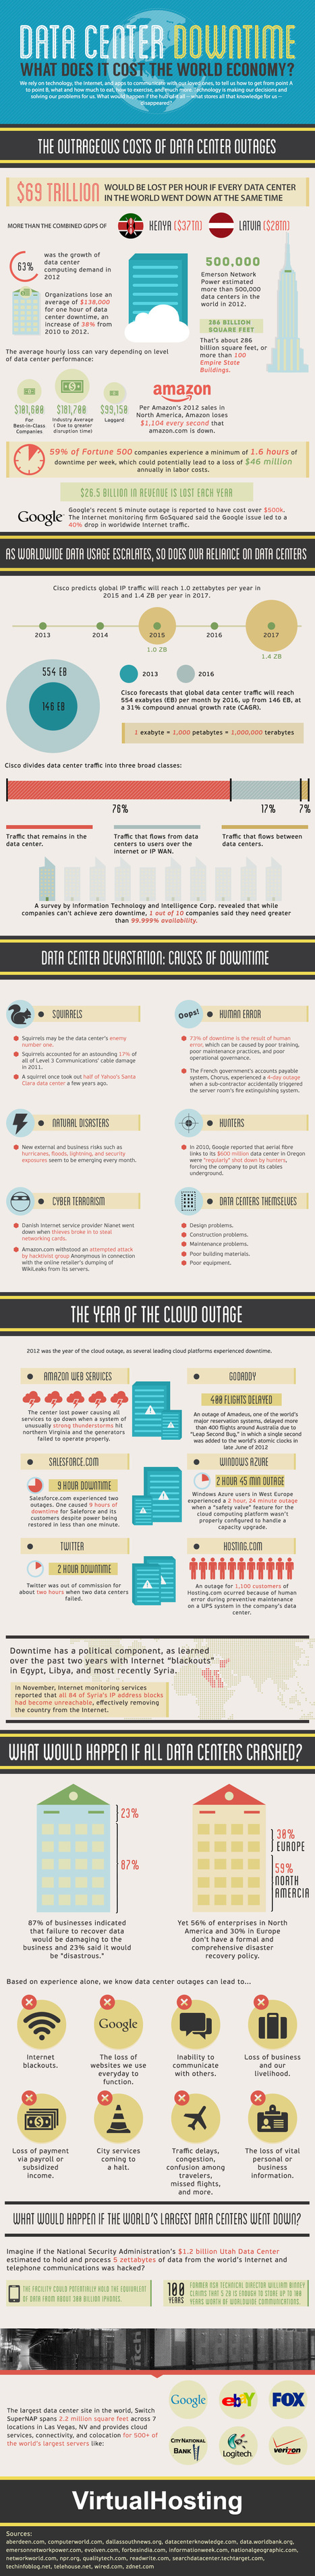 INFOGRAPHIC: Data Center Downtime | Future of Cloud Computing and IoT | Scoop.it